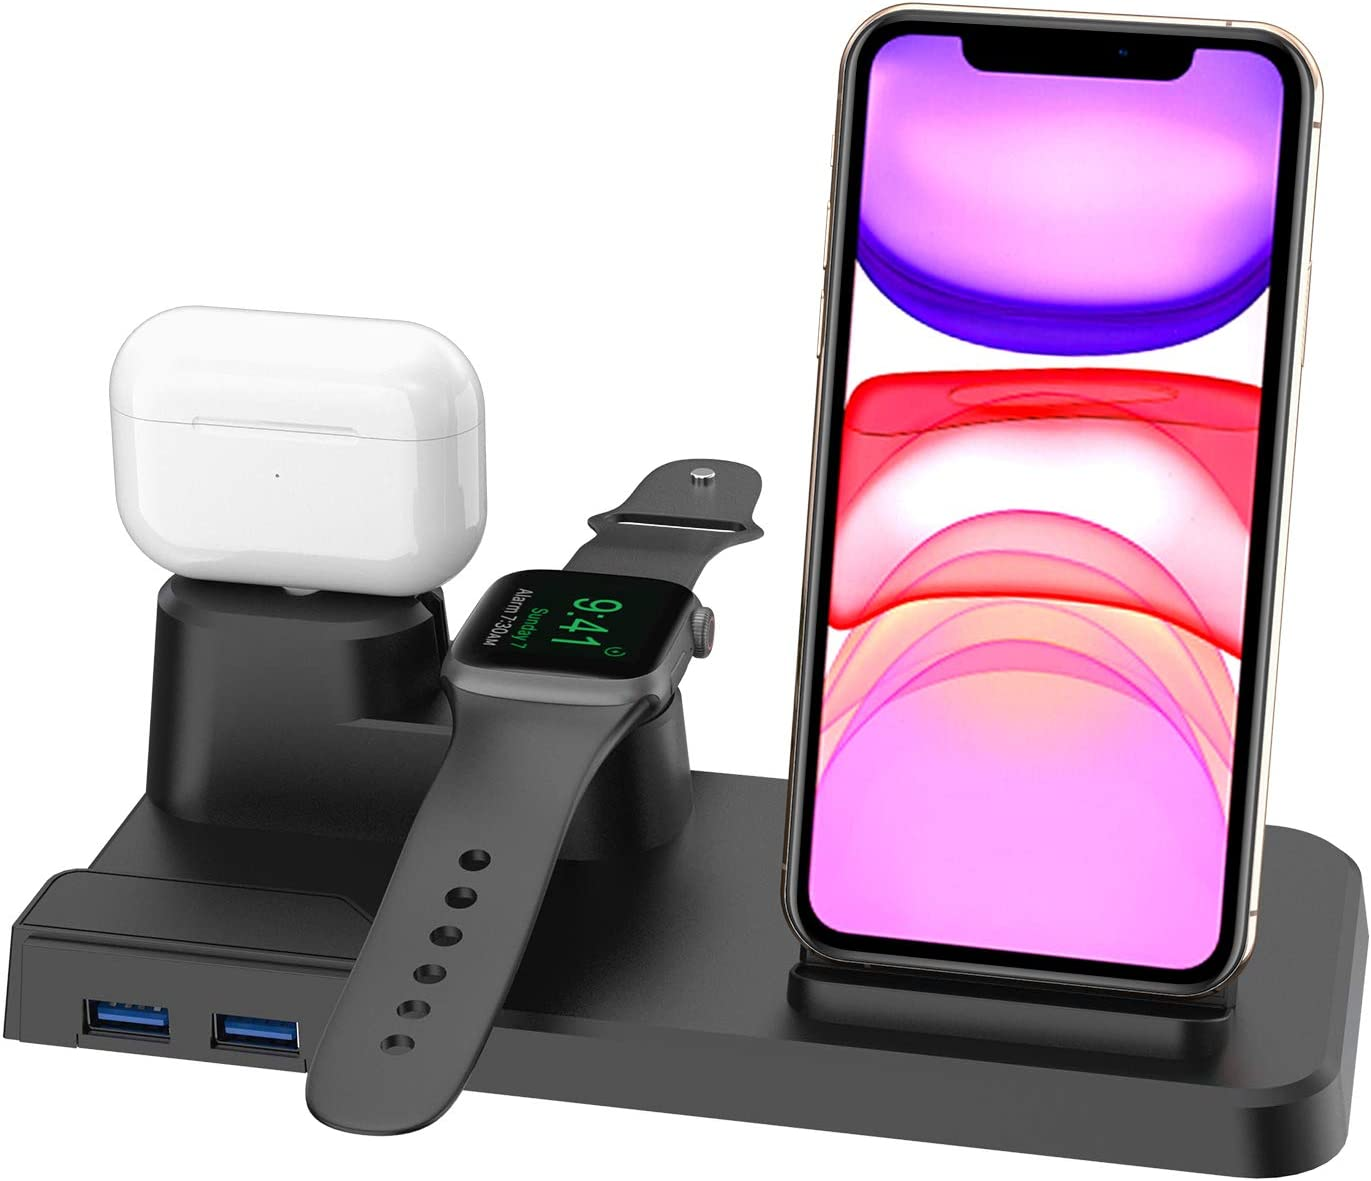 Wireless Charger, Qi 7.5W Fast Wireless Charging Stand Compatible iPhone 11/11 Pro/11 Pro Max/XS Max/XS/X/8/8+, 3 in 1 Charging Dock Organizer Station Compatible Apple Watch,AirPods-No AC Adapter